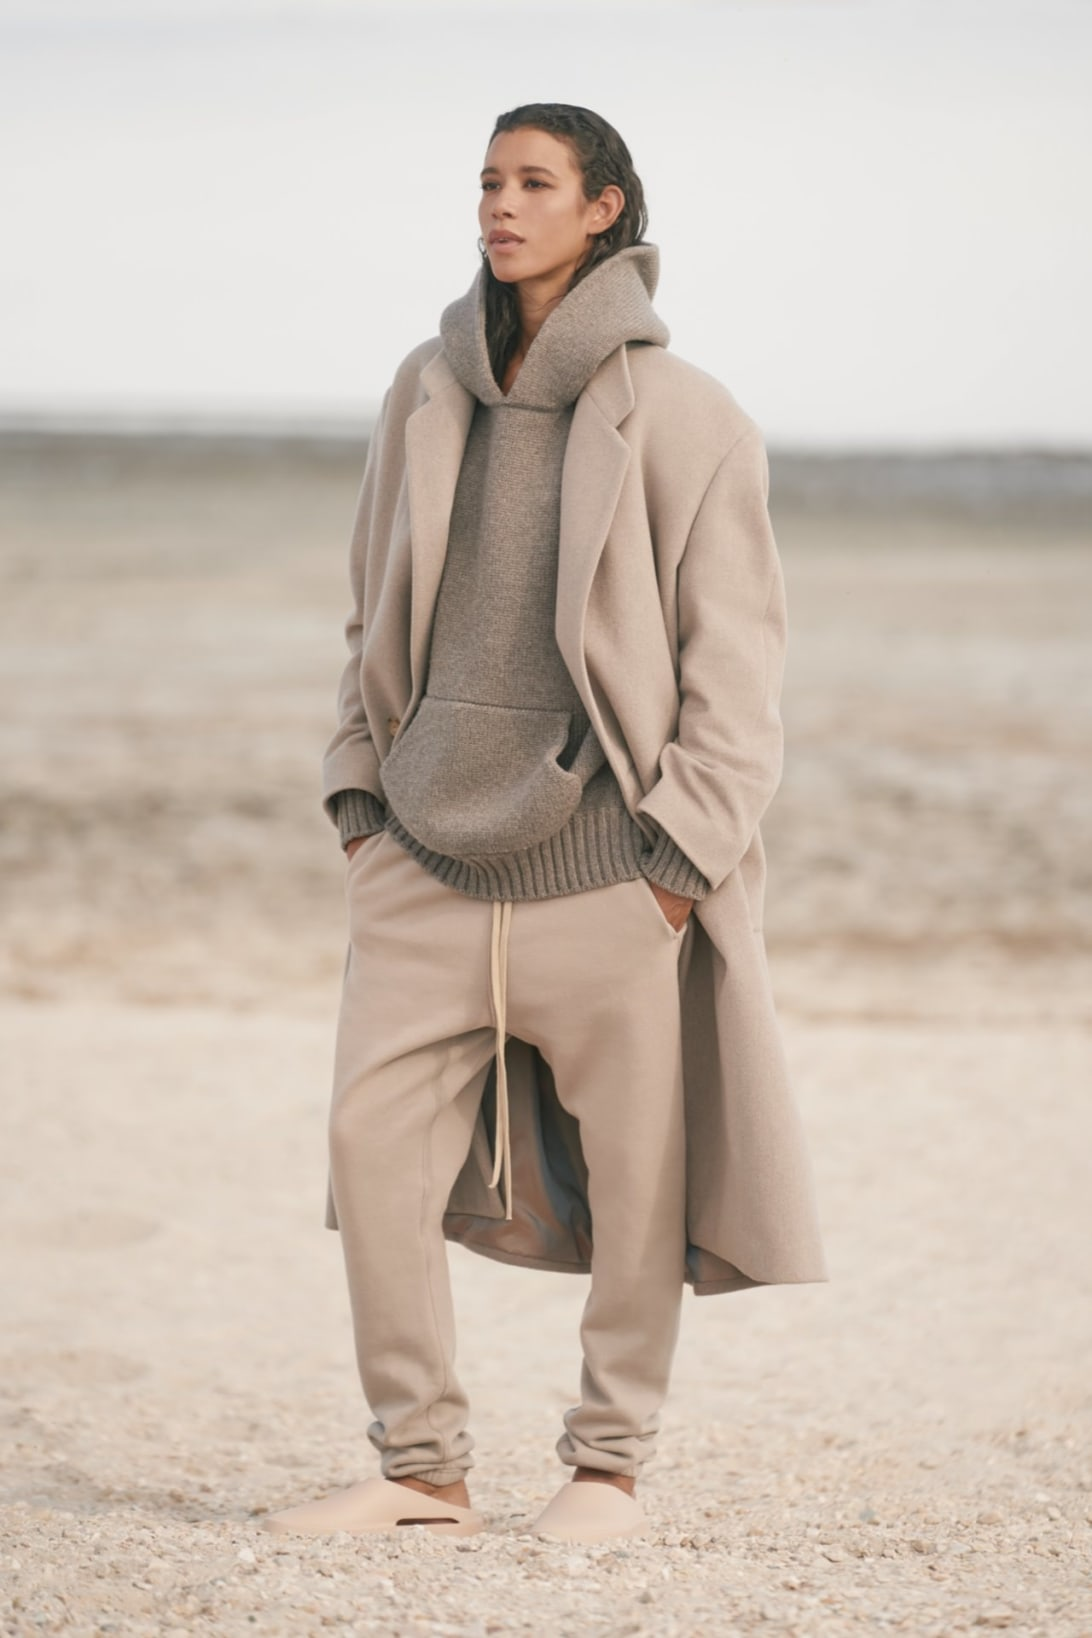 Seventh Collection Fall/Winter 2021 Campaign Look 05